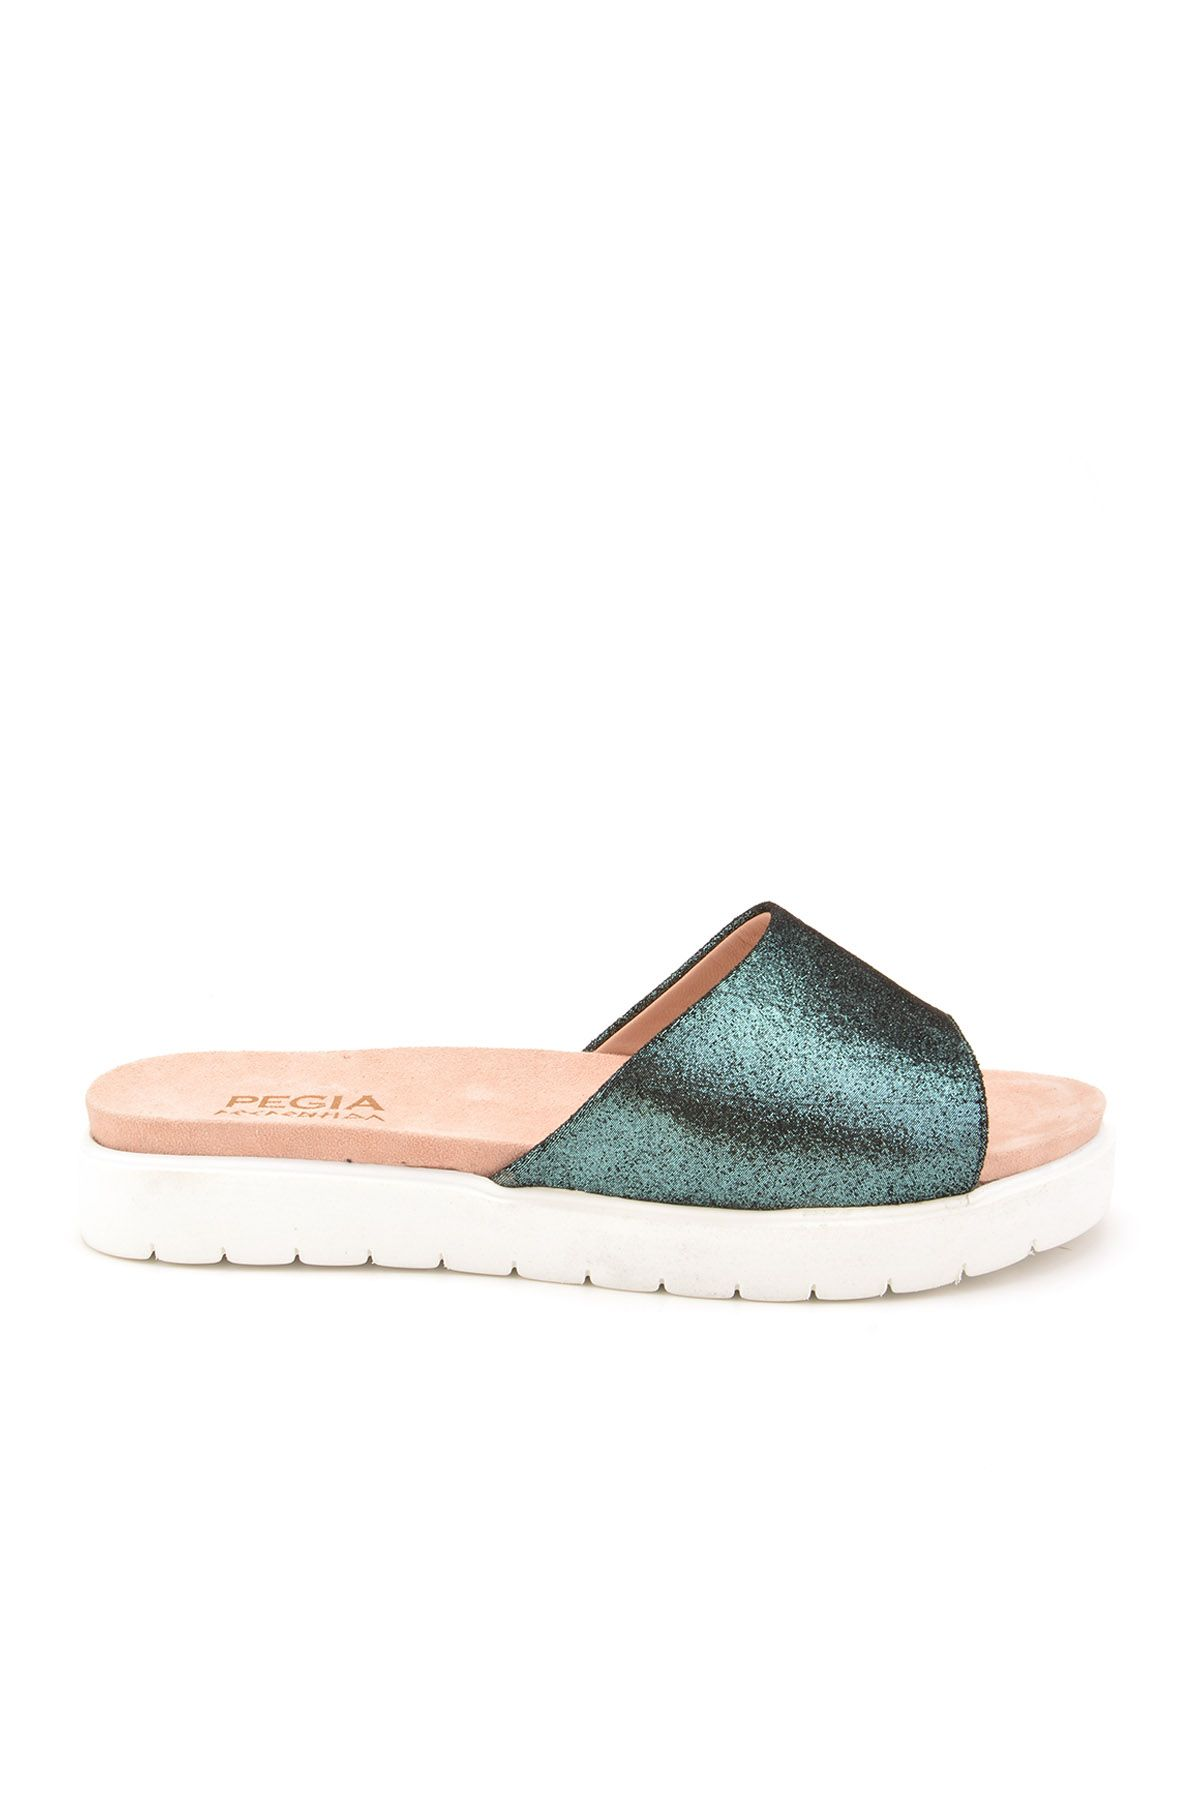 Pegia Drancy Women Slippers From Genuine Leather REC-006 Green